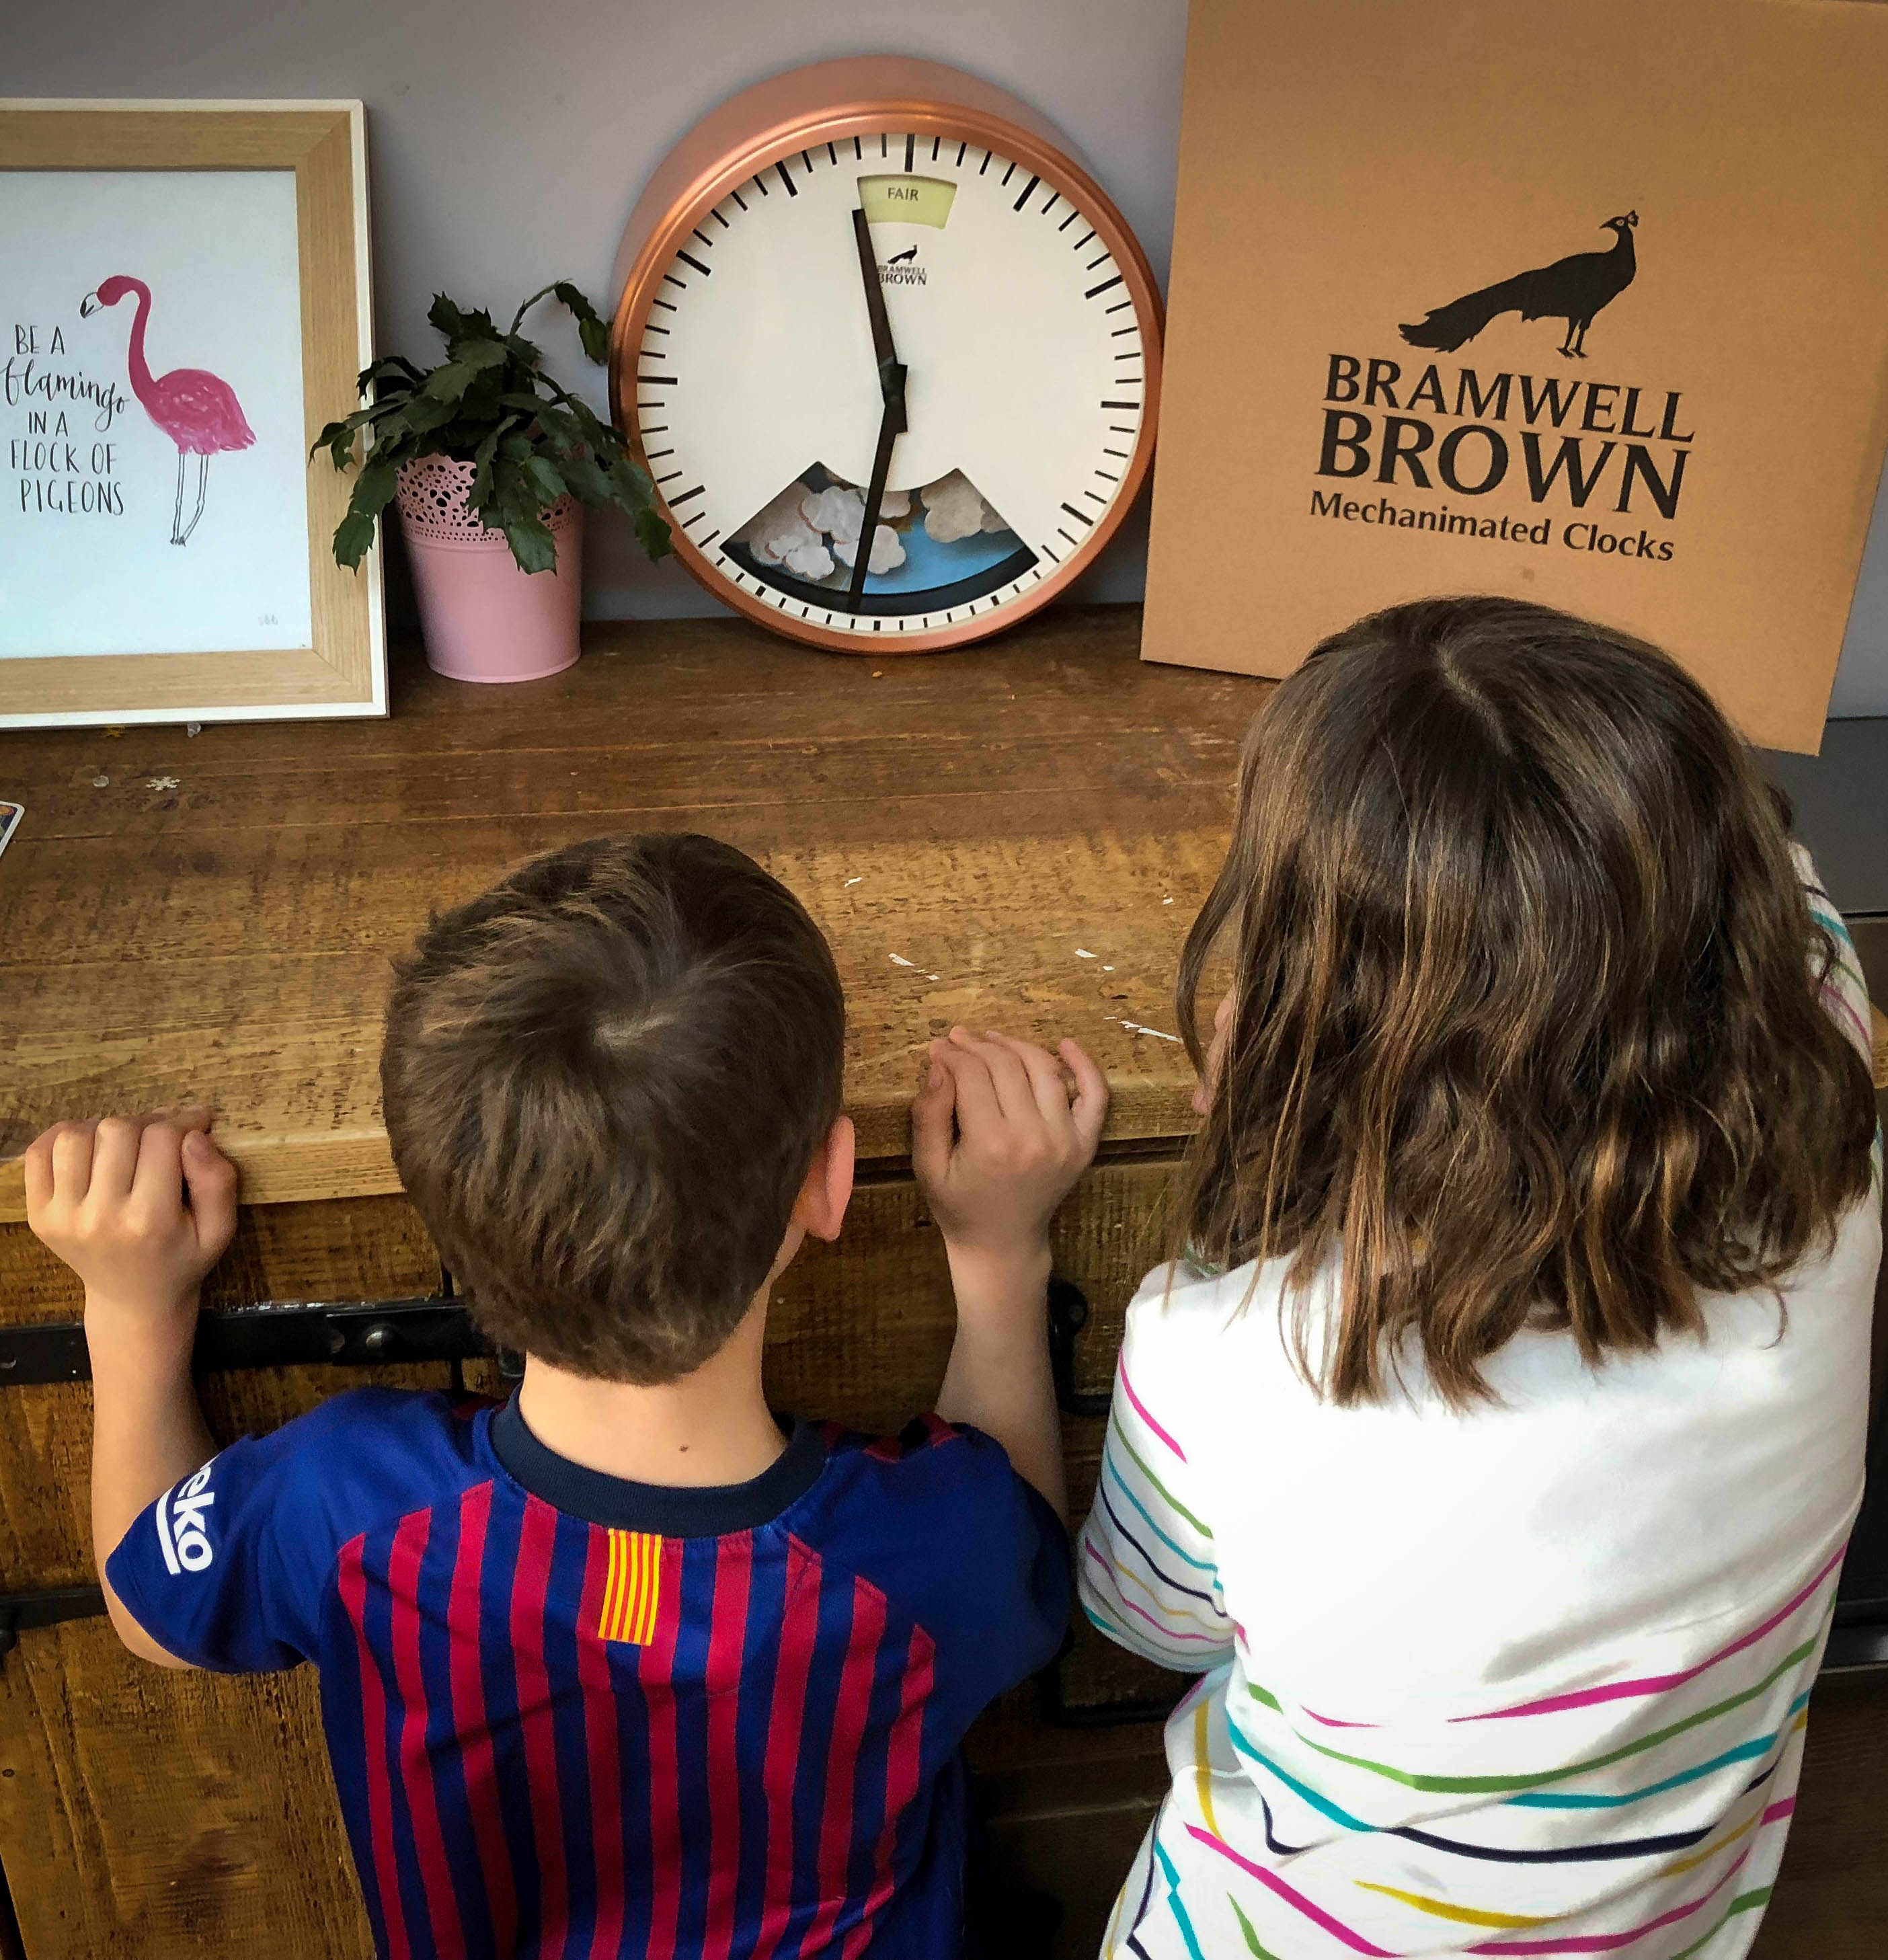 My two children looking at their Bramwell Brown clock waiting to see what the weather will be.